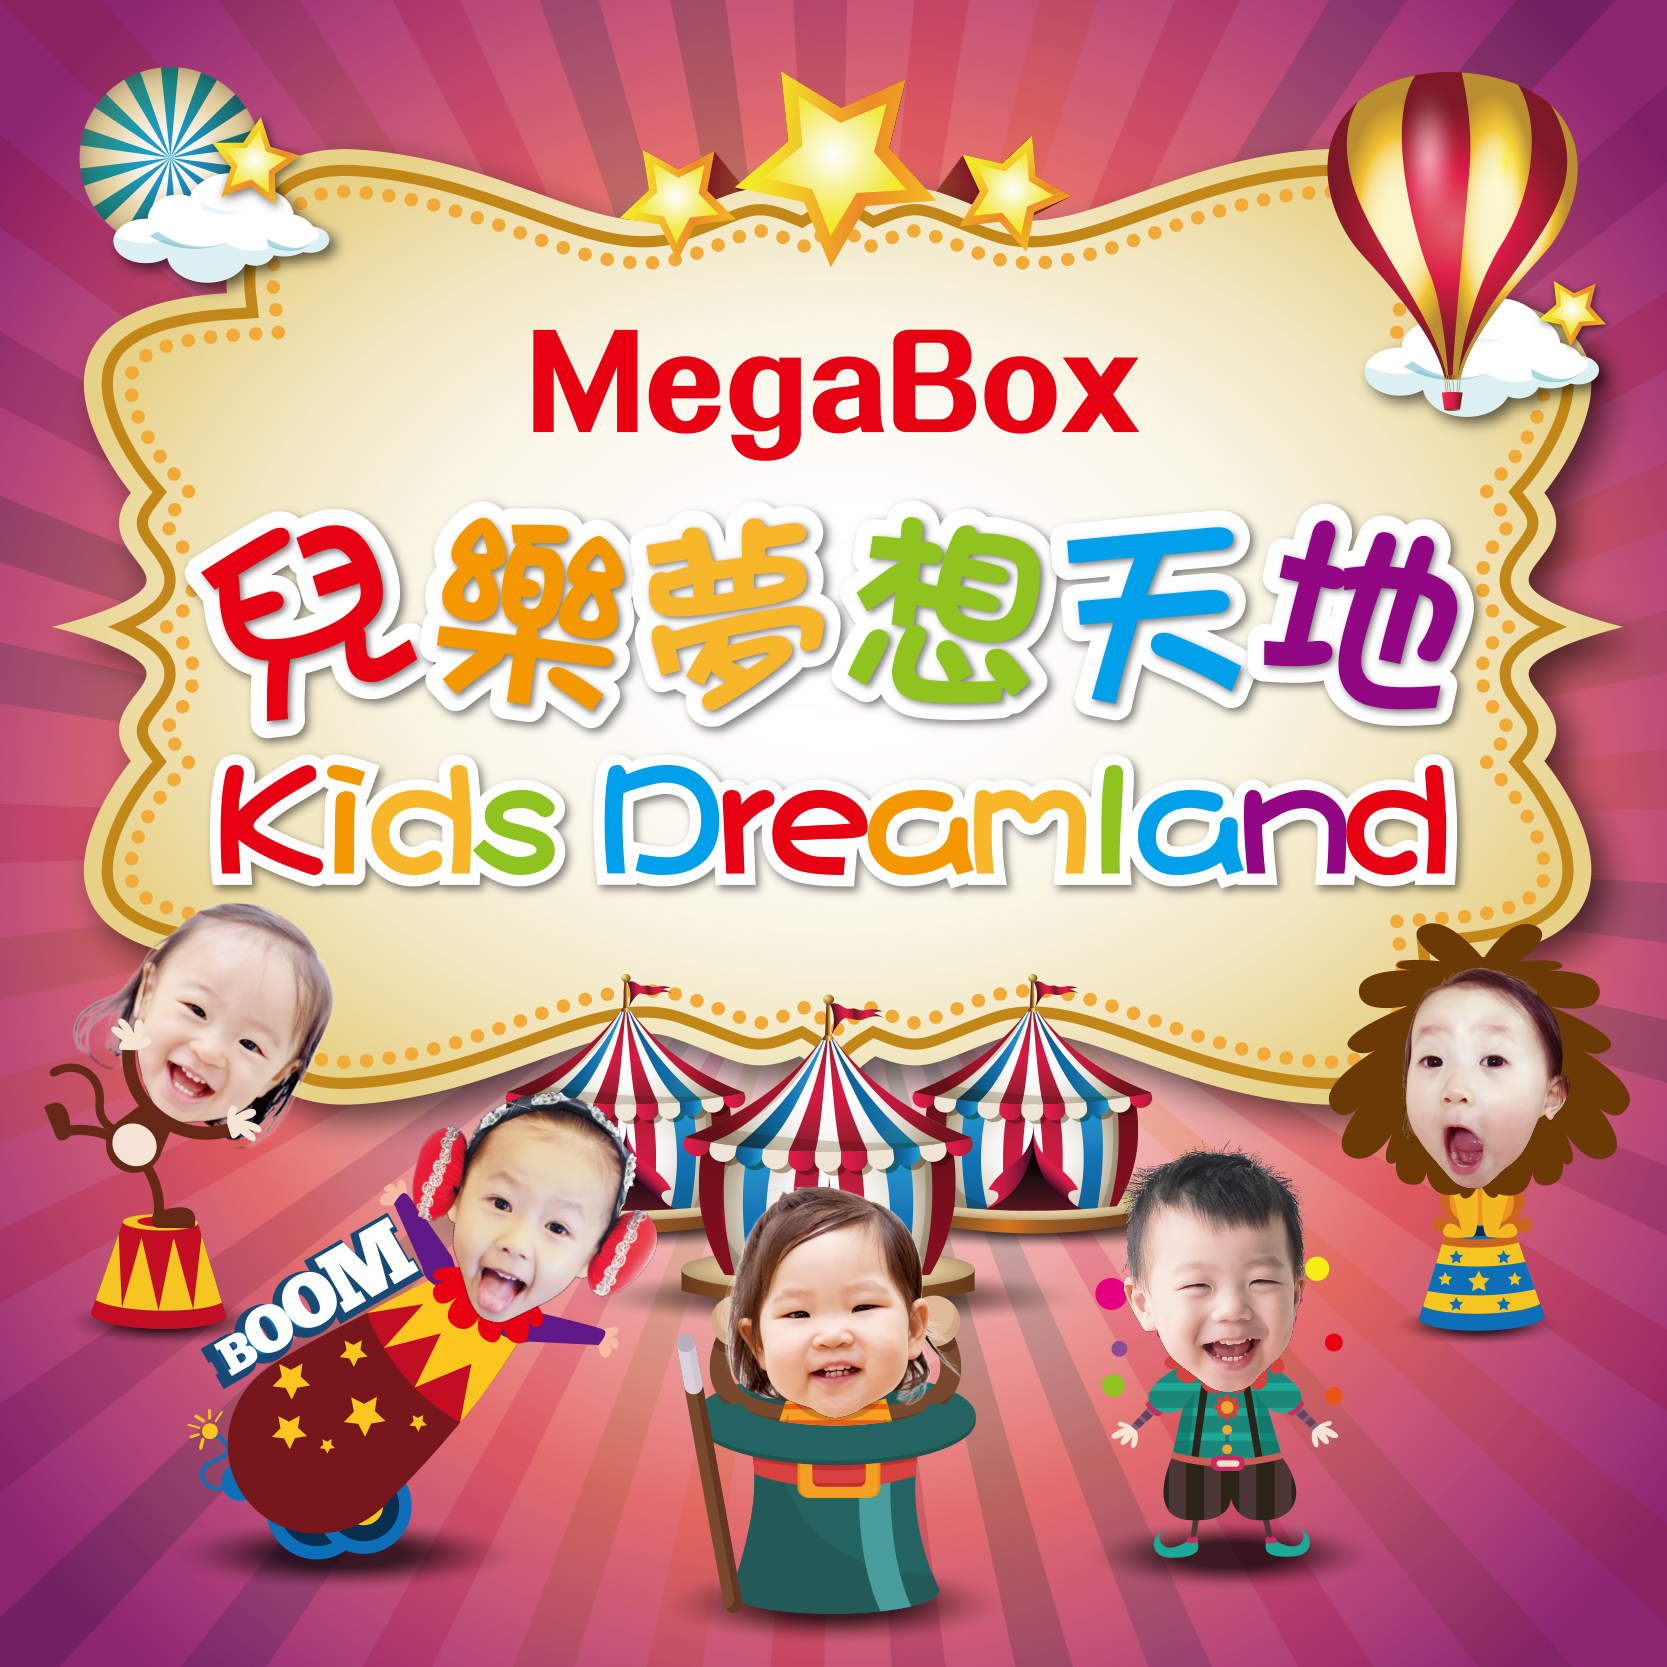 MEGABOX KIDS DREAMLAND